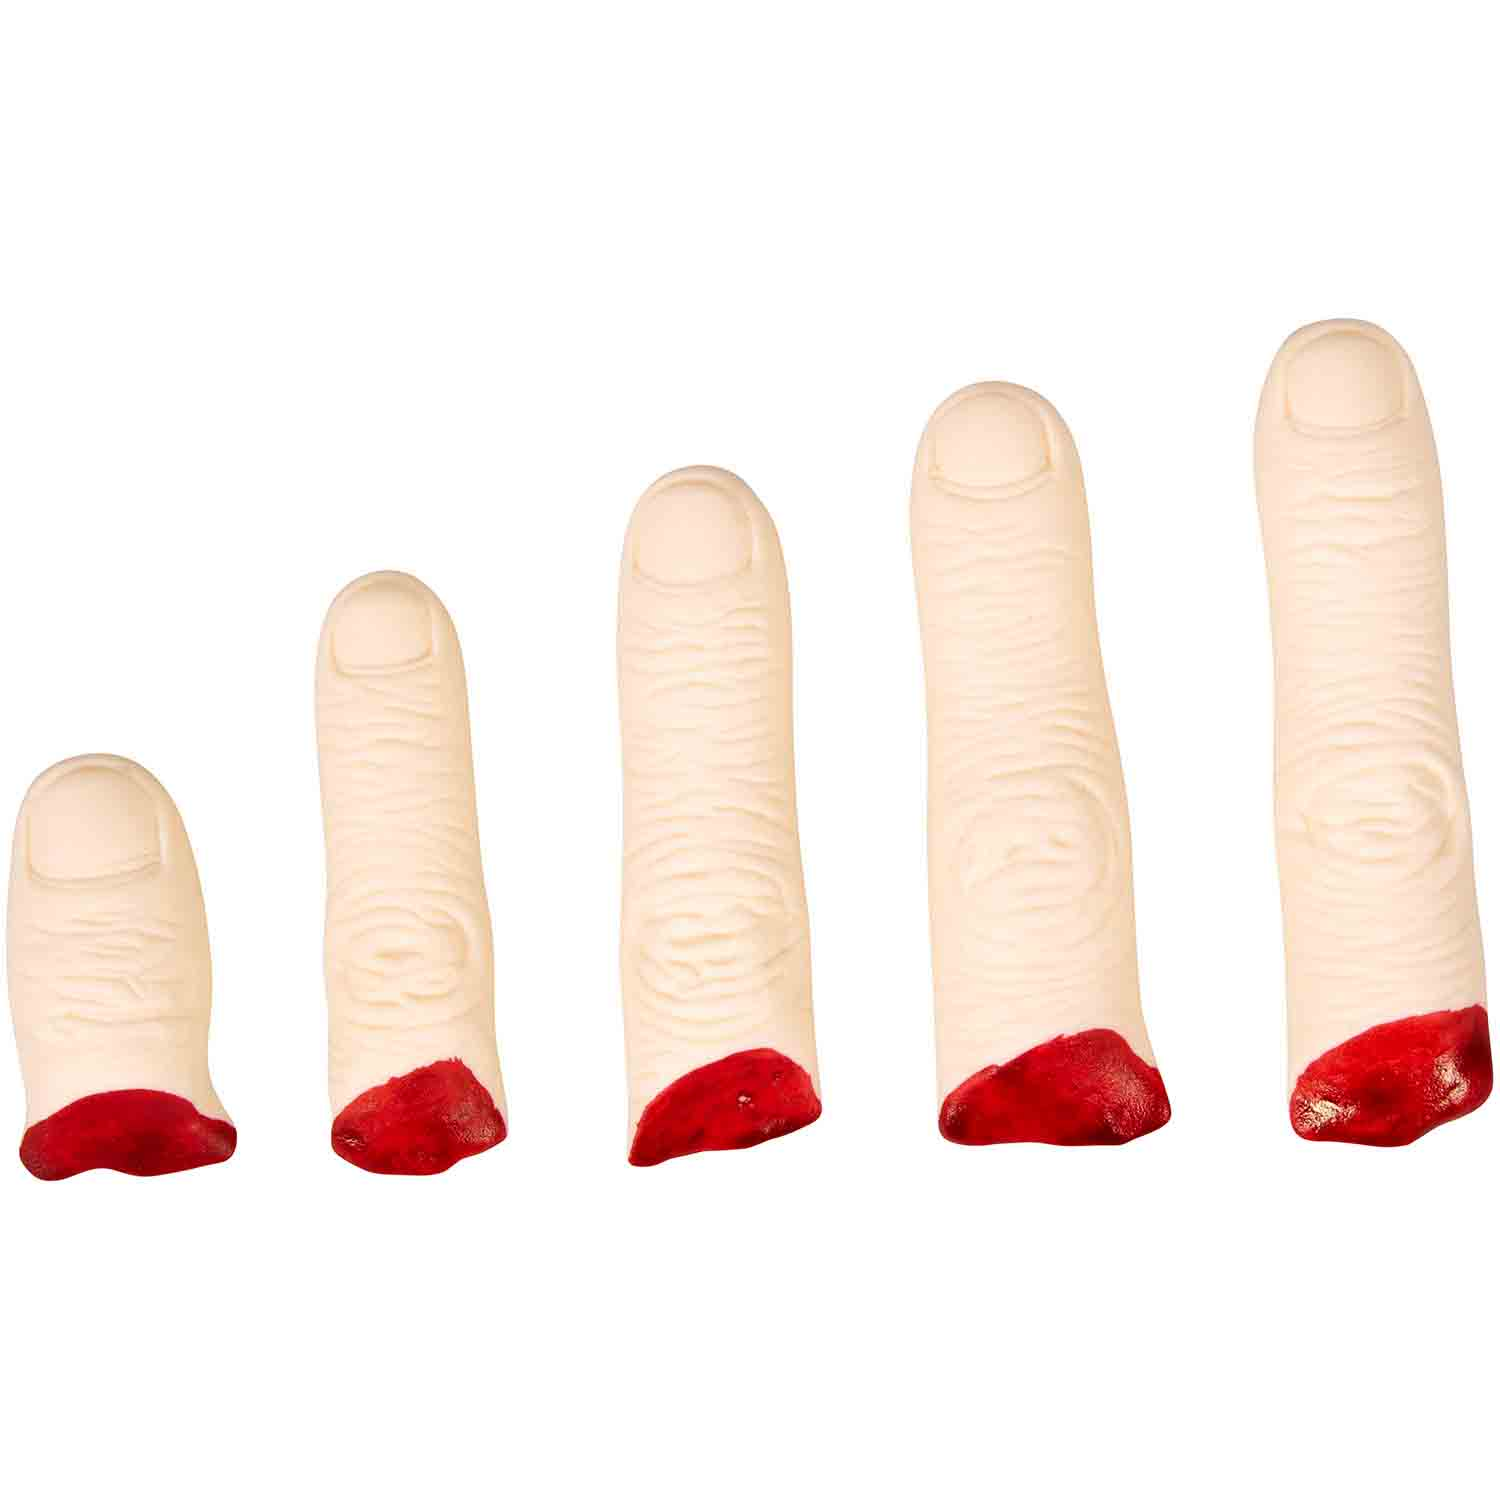 Severed Fingers Candy Decorations